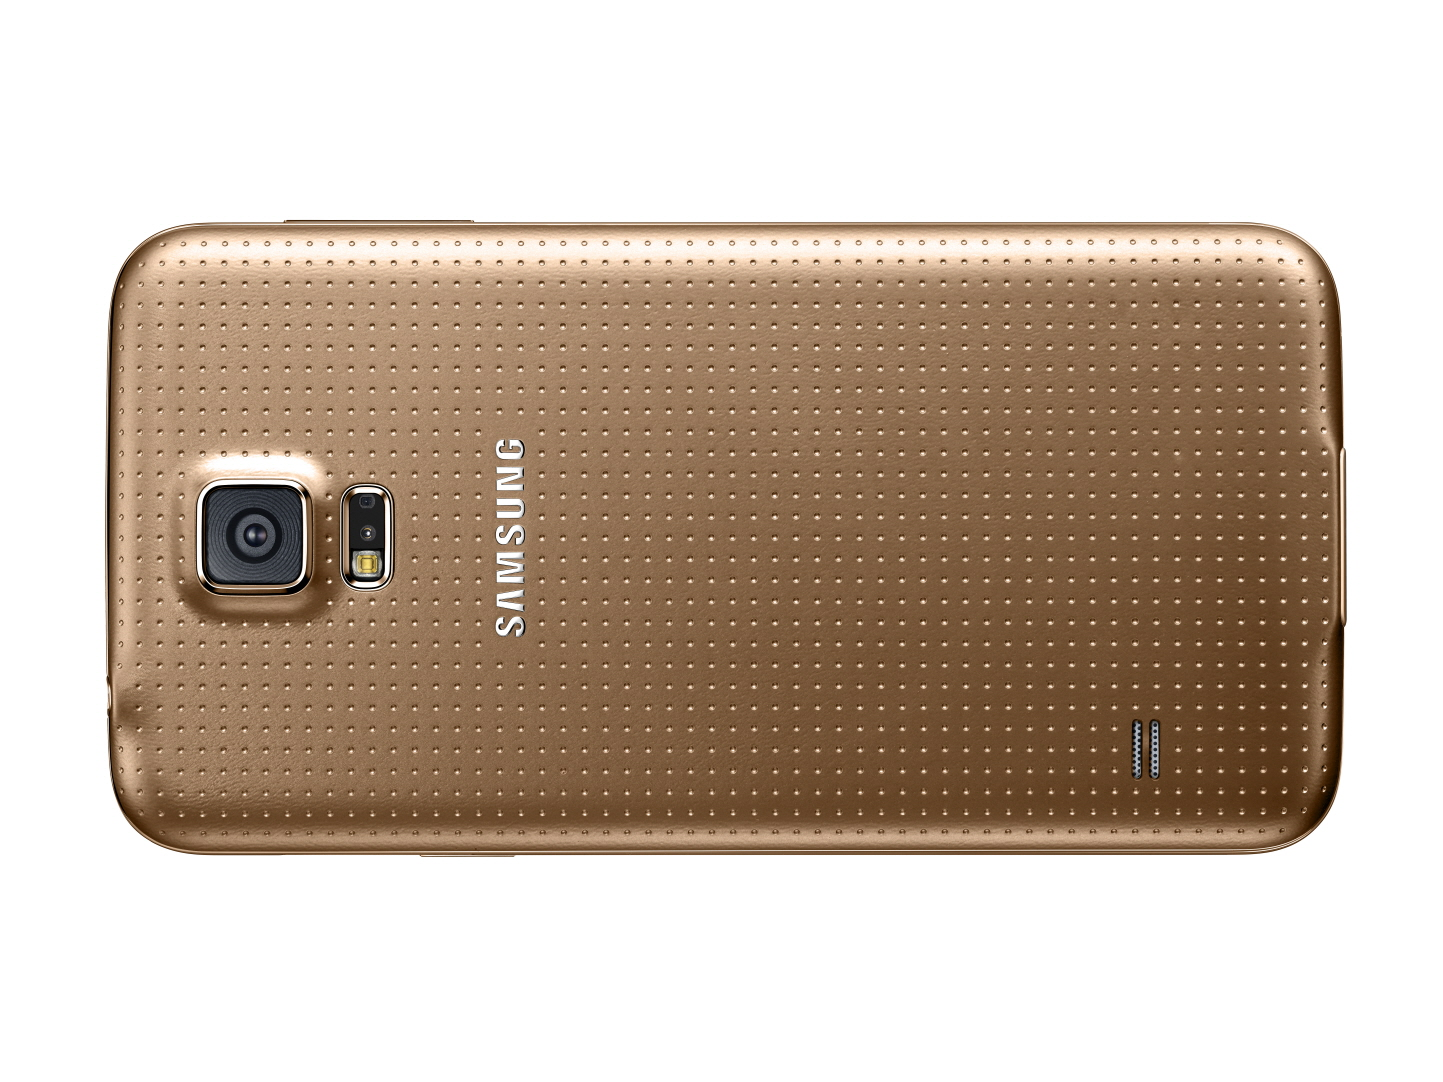 sm-g900f_copper-gold_10